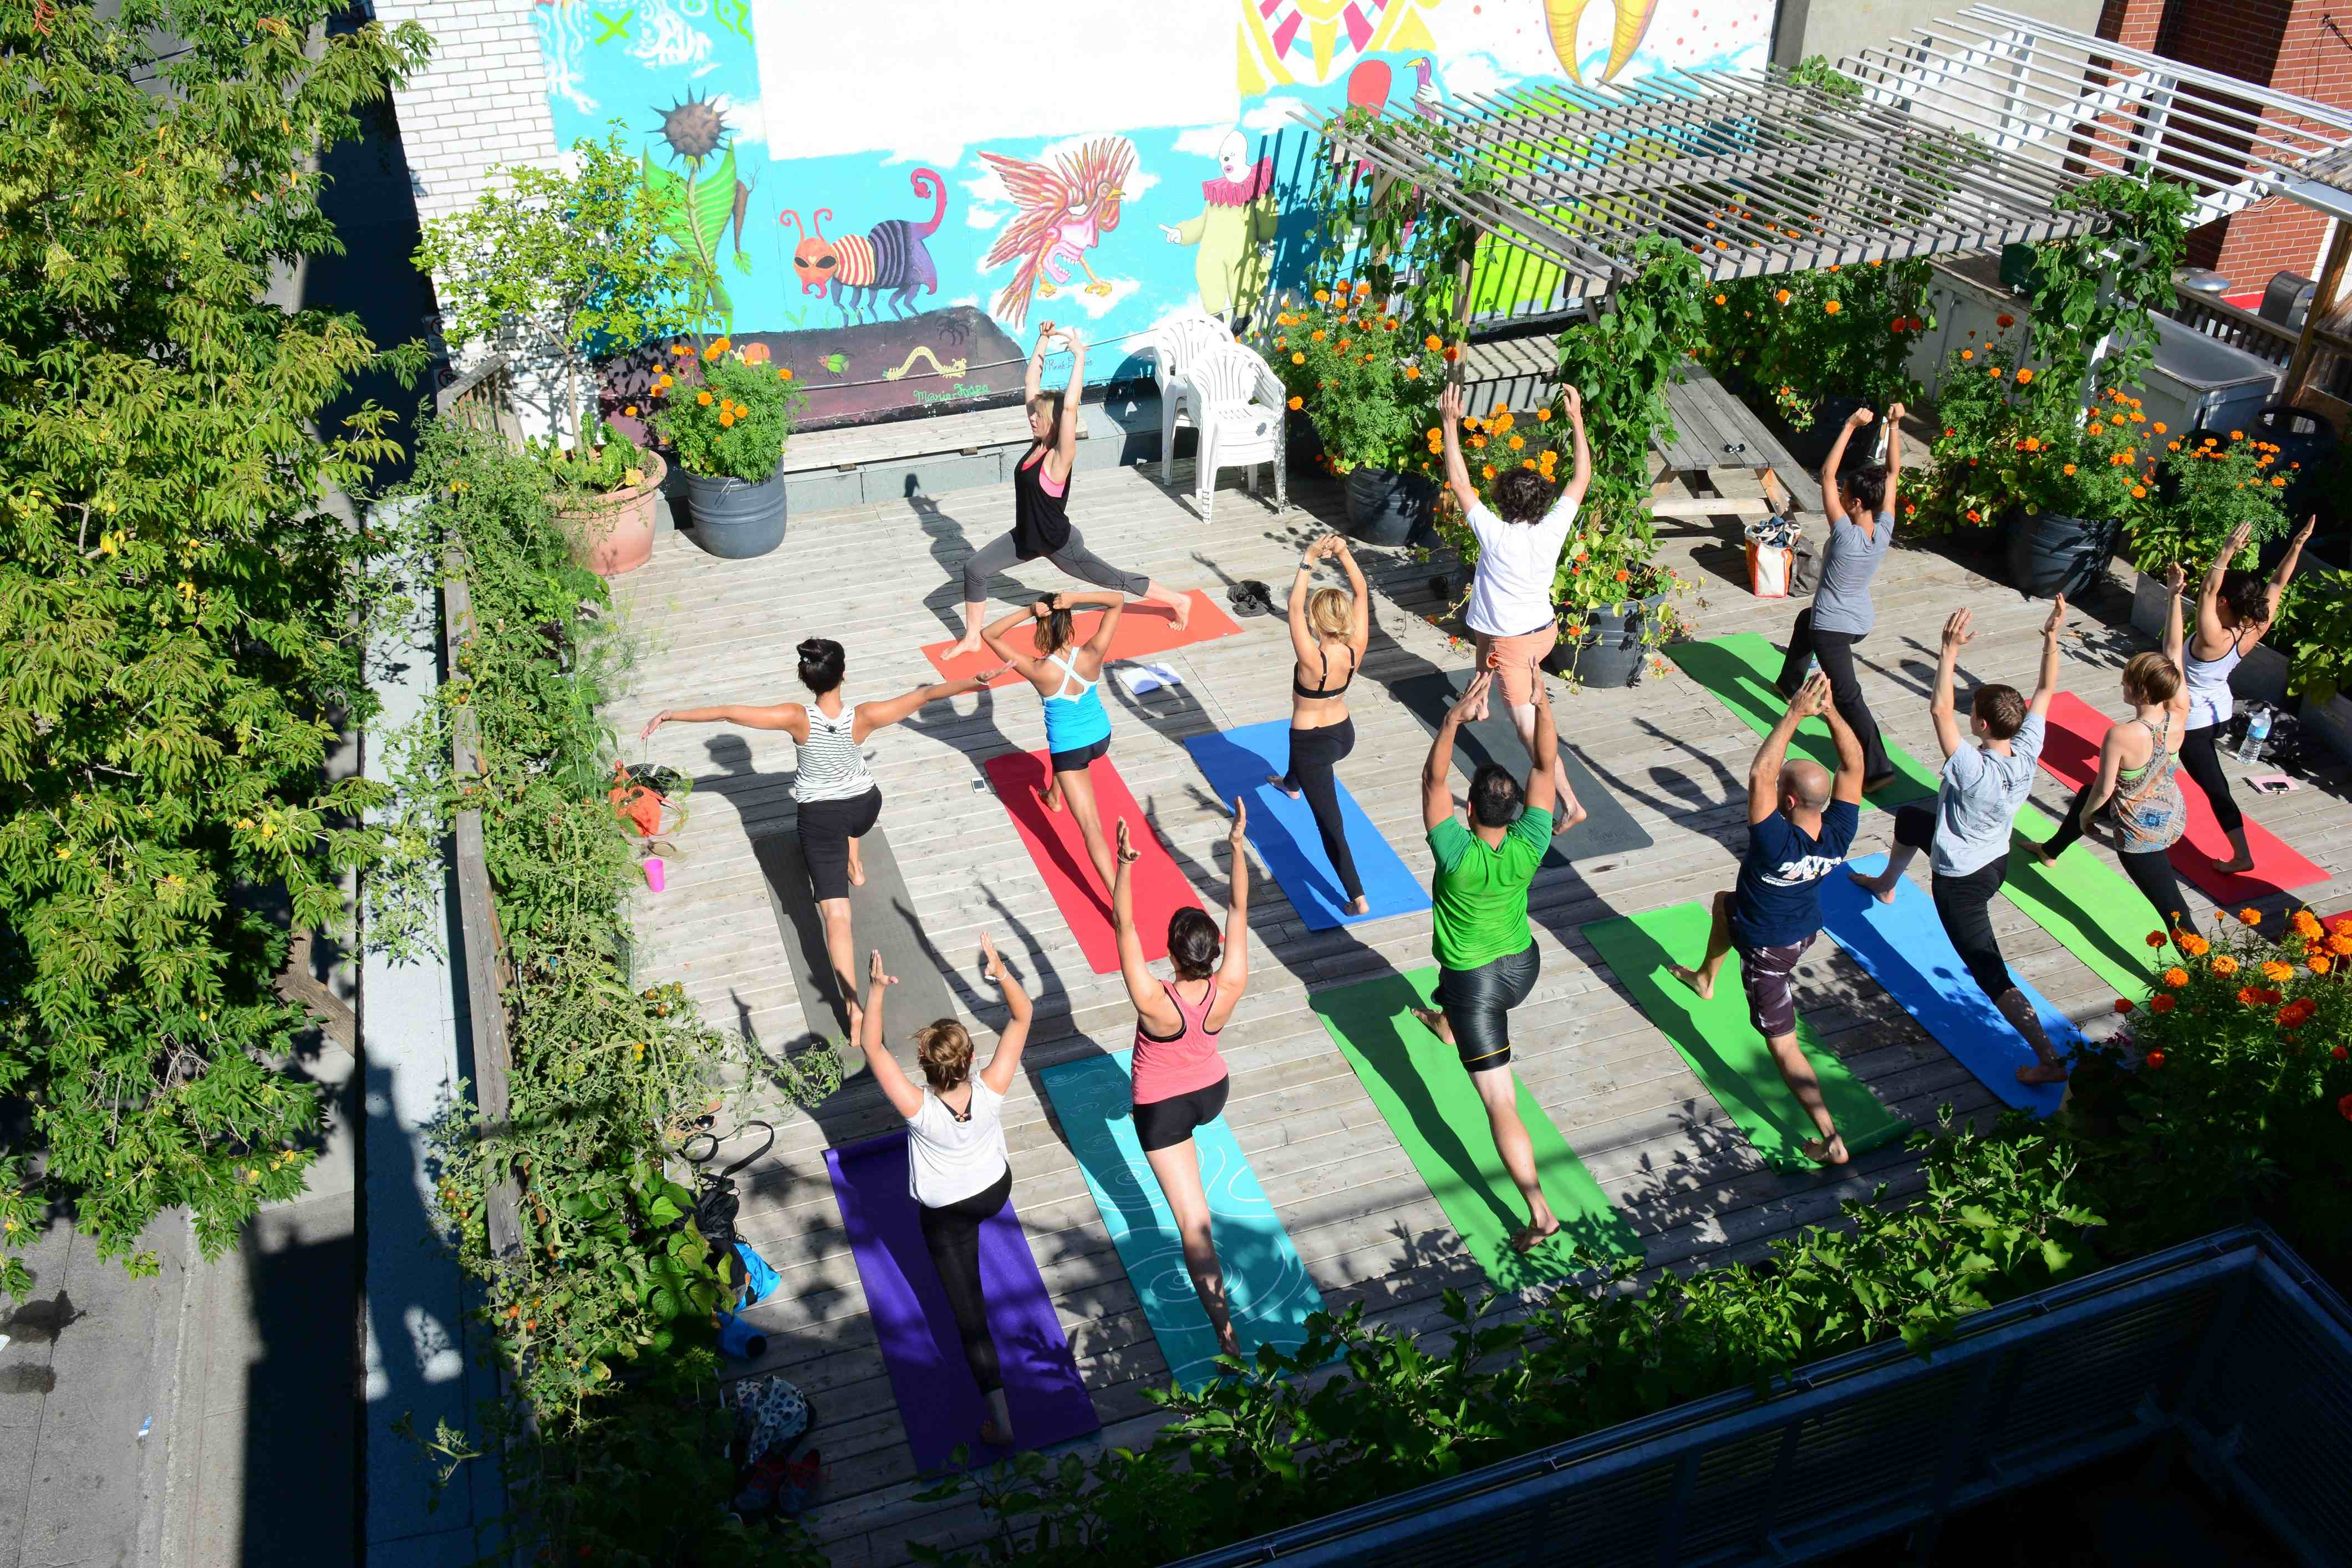 Yoga students enjoy the sun during their practice on the rooftop of Santropol Rouland in downtown Montreal